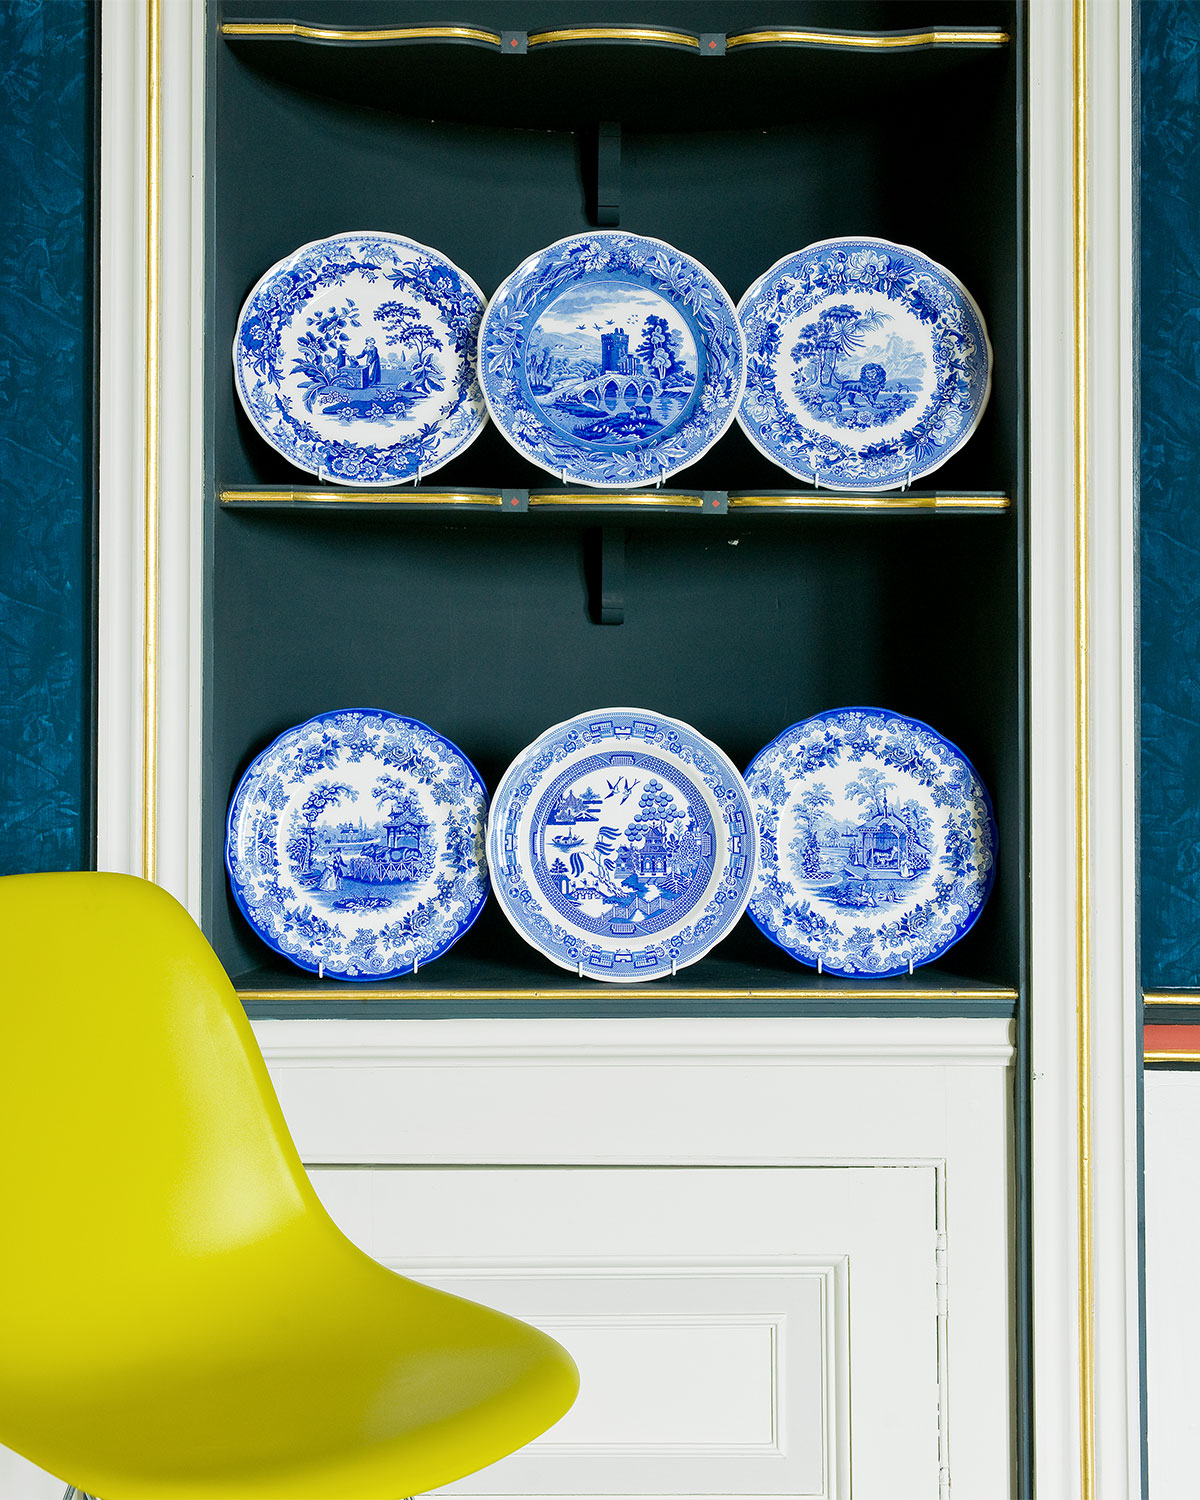 Spode Blue Room Zoological Plate Set